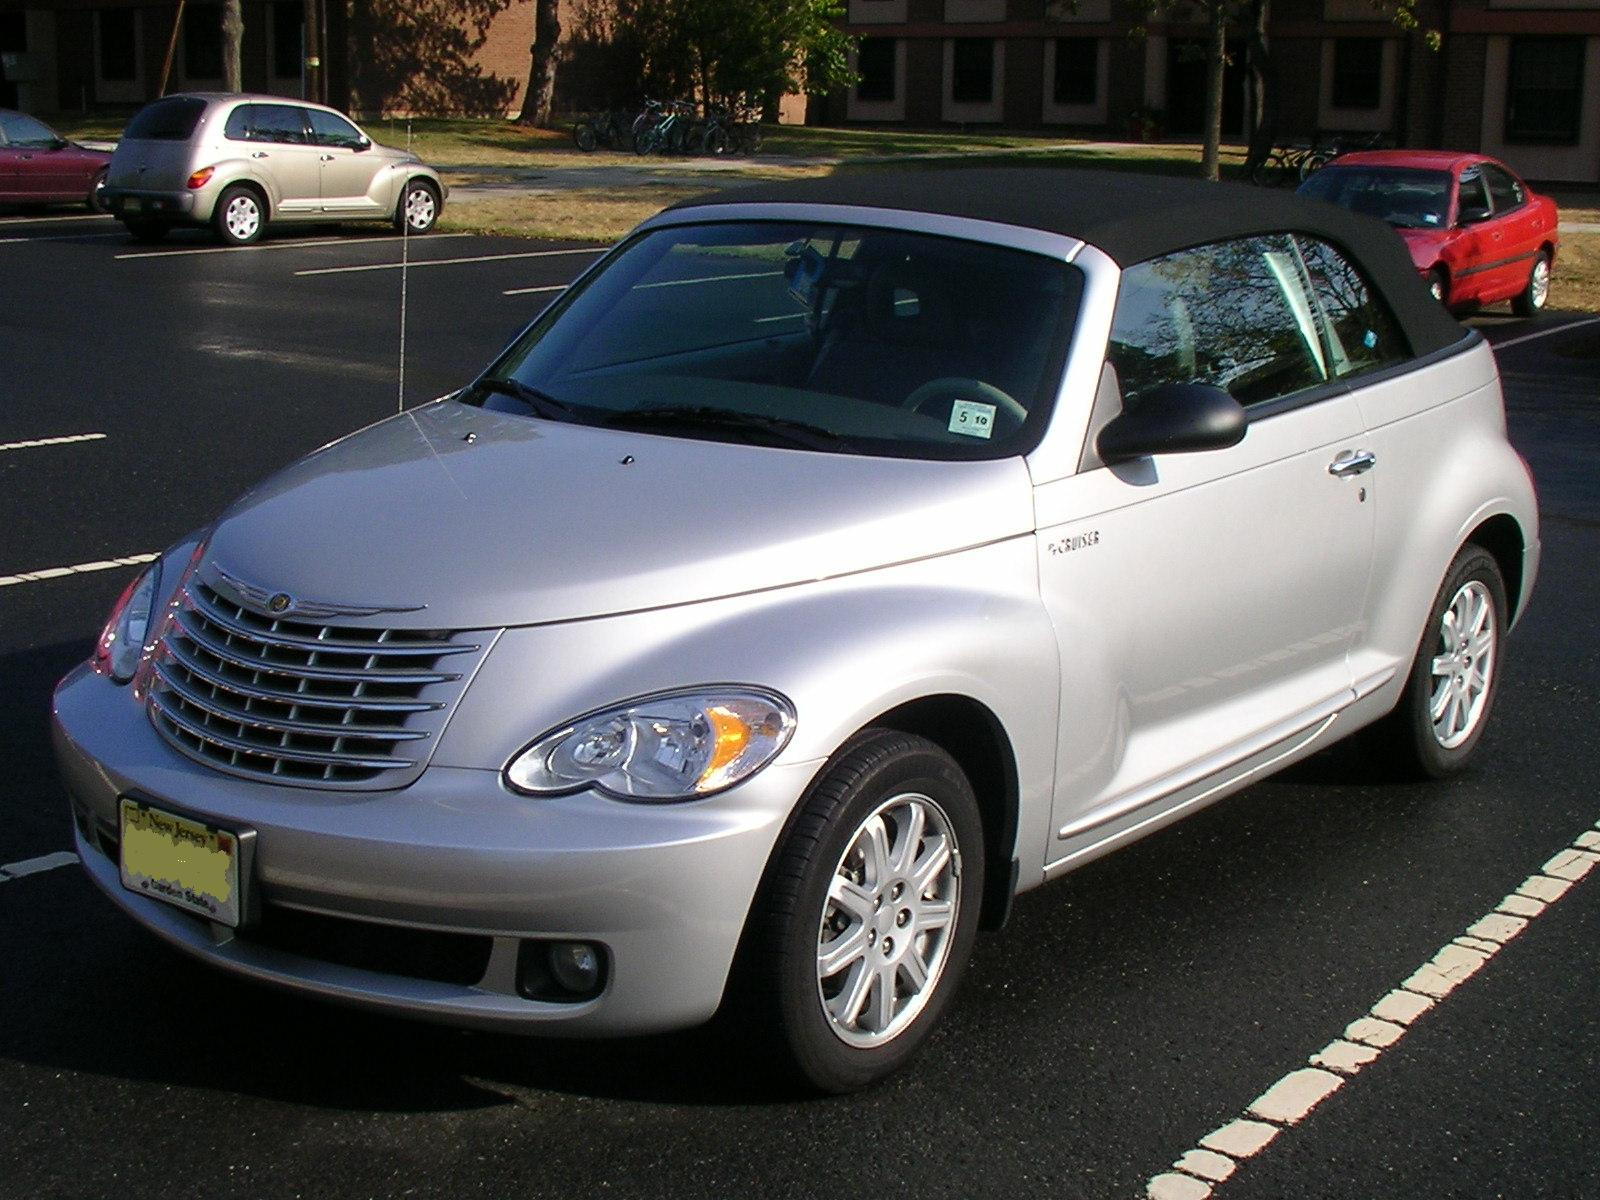 Chrysler Pt Cruiser Convertible 19 Jpg